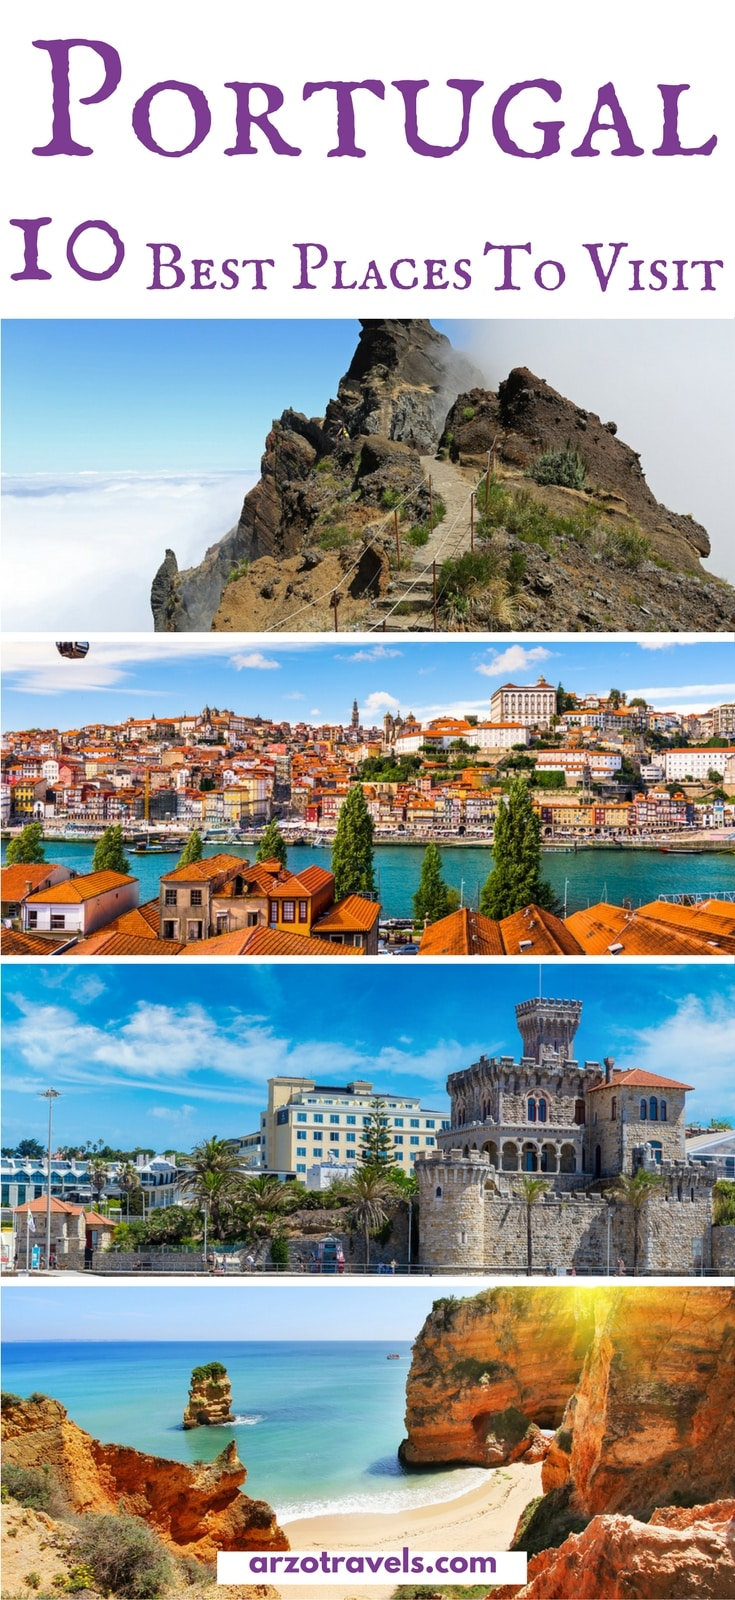 Best Places to Visit in Portugal - Arzo Travels